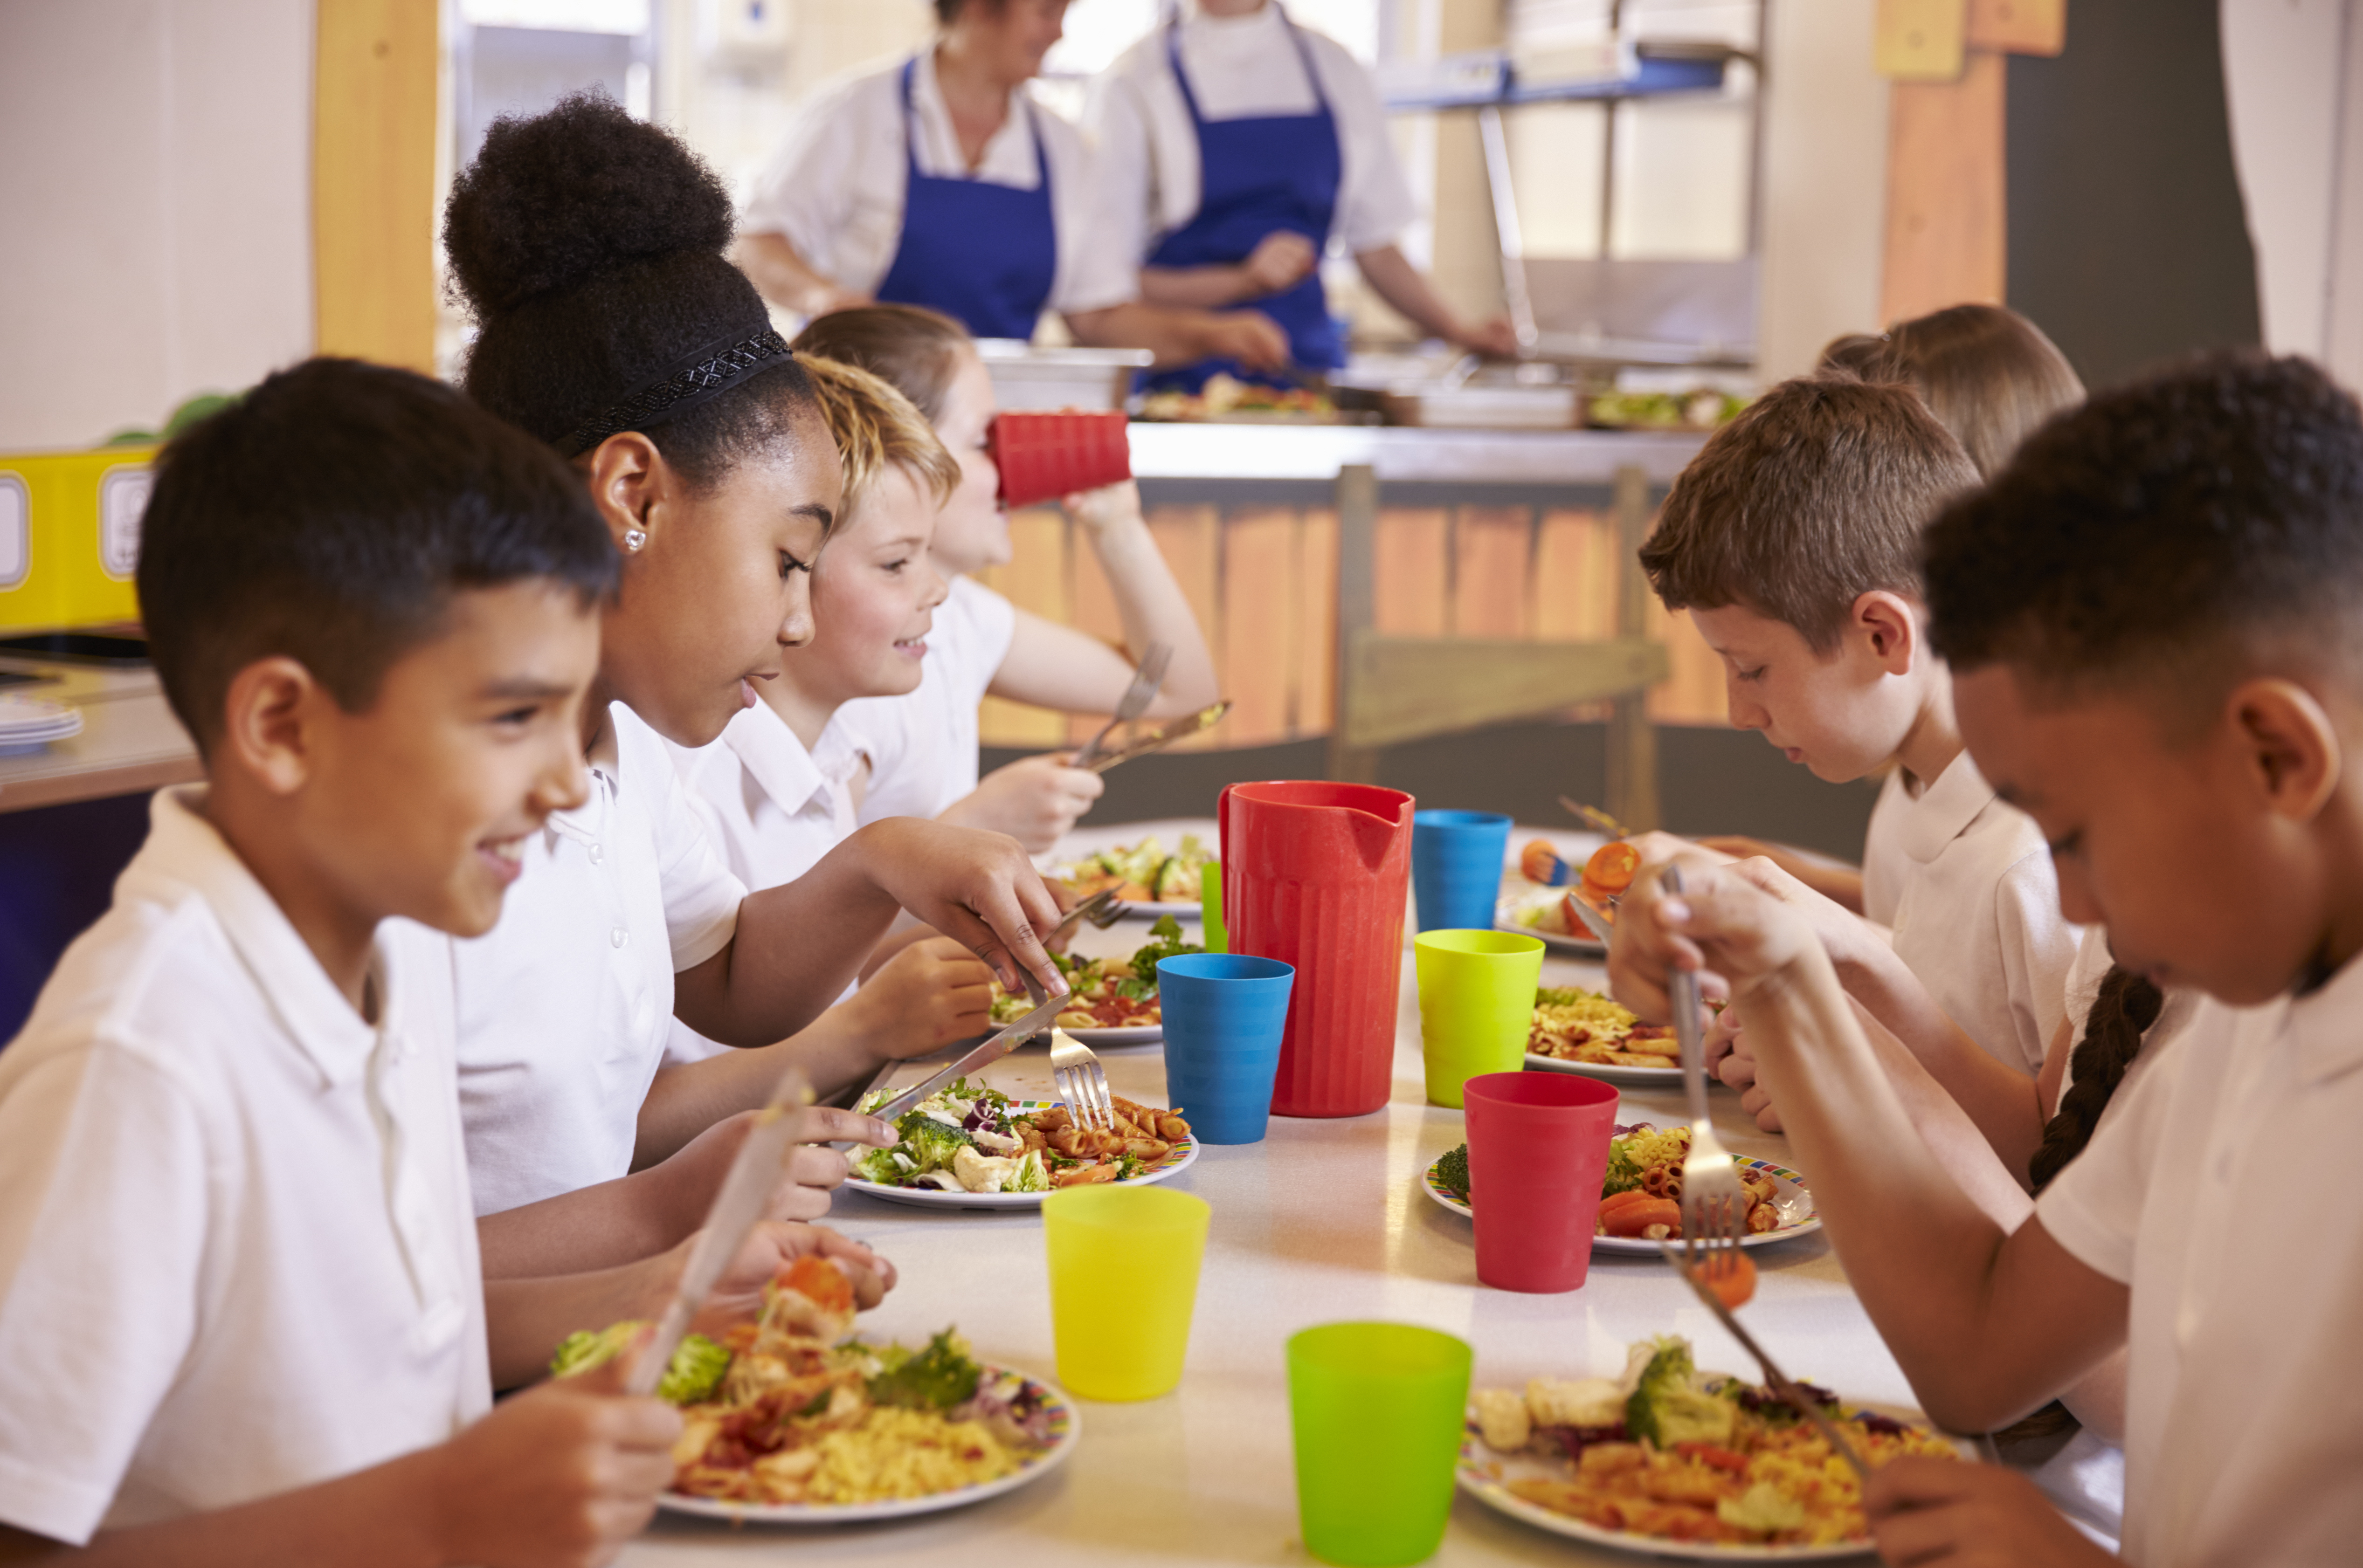 schoolkids eating